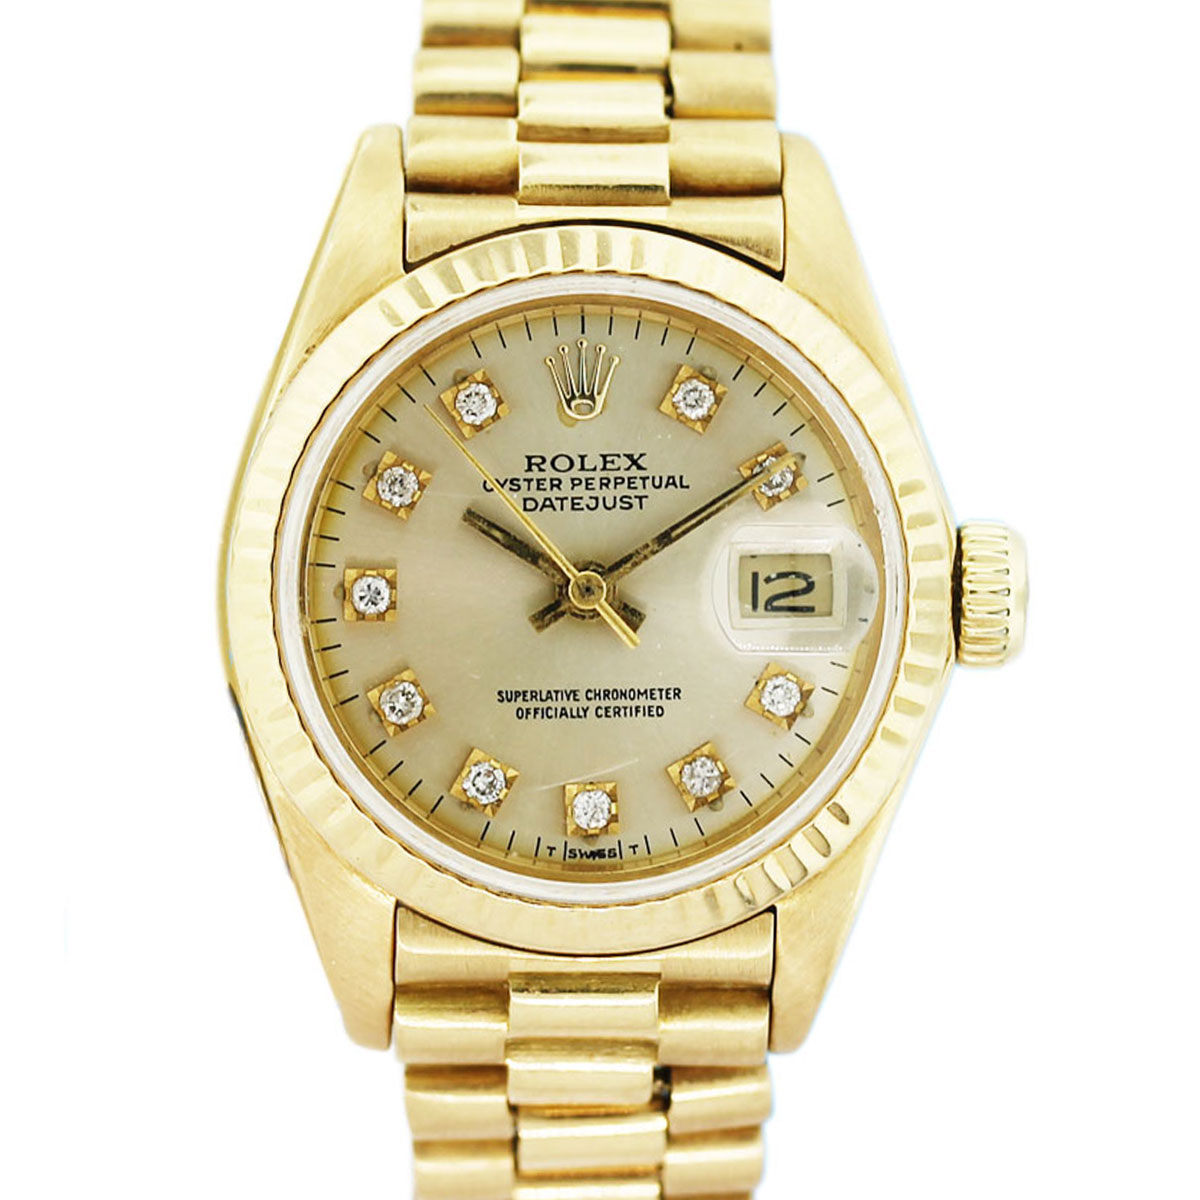 Rolex Datejust 6917 Presidential Diamond Dial Gold Watch ...